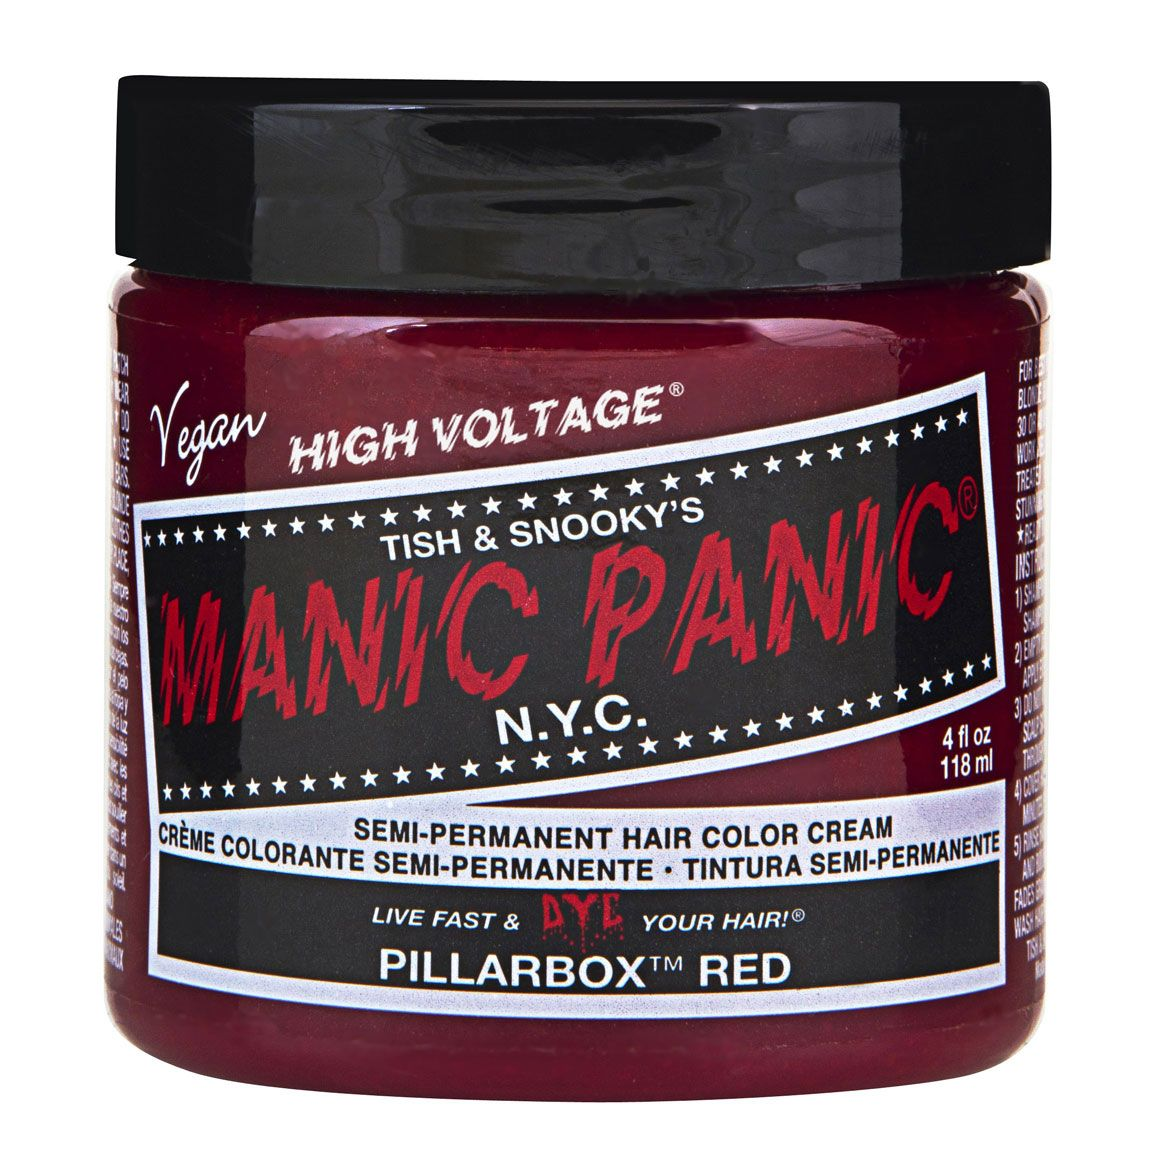 Pillarbox red desires punk pinterest hair dye red hair dyes